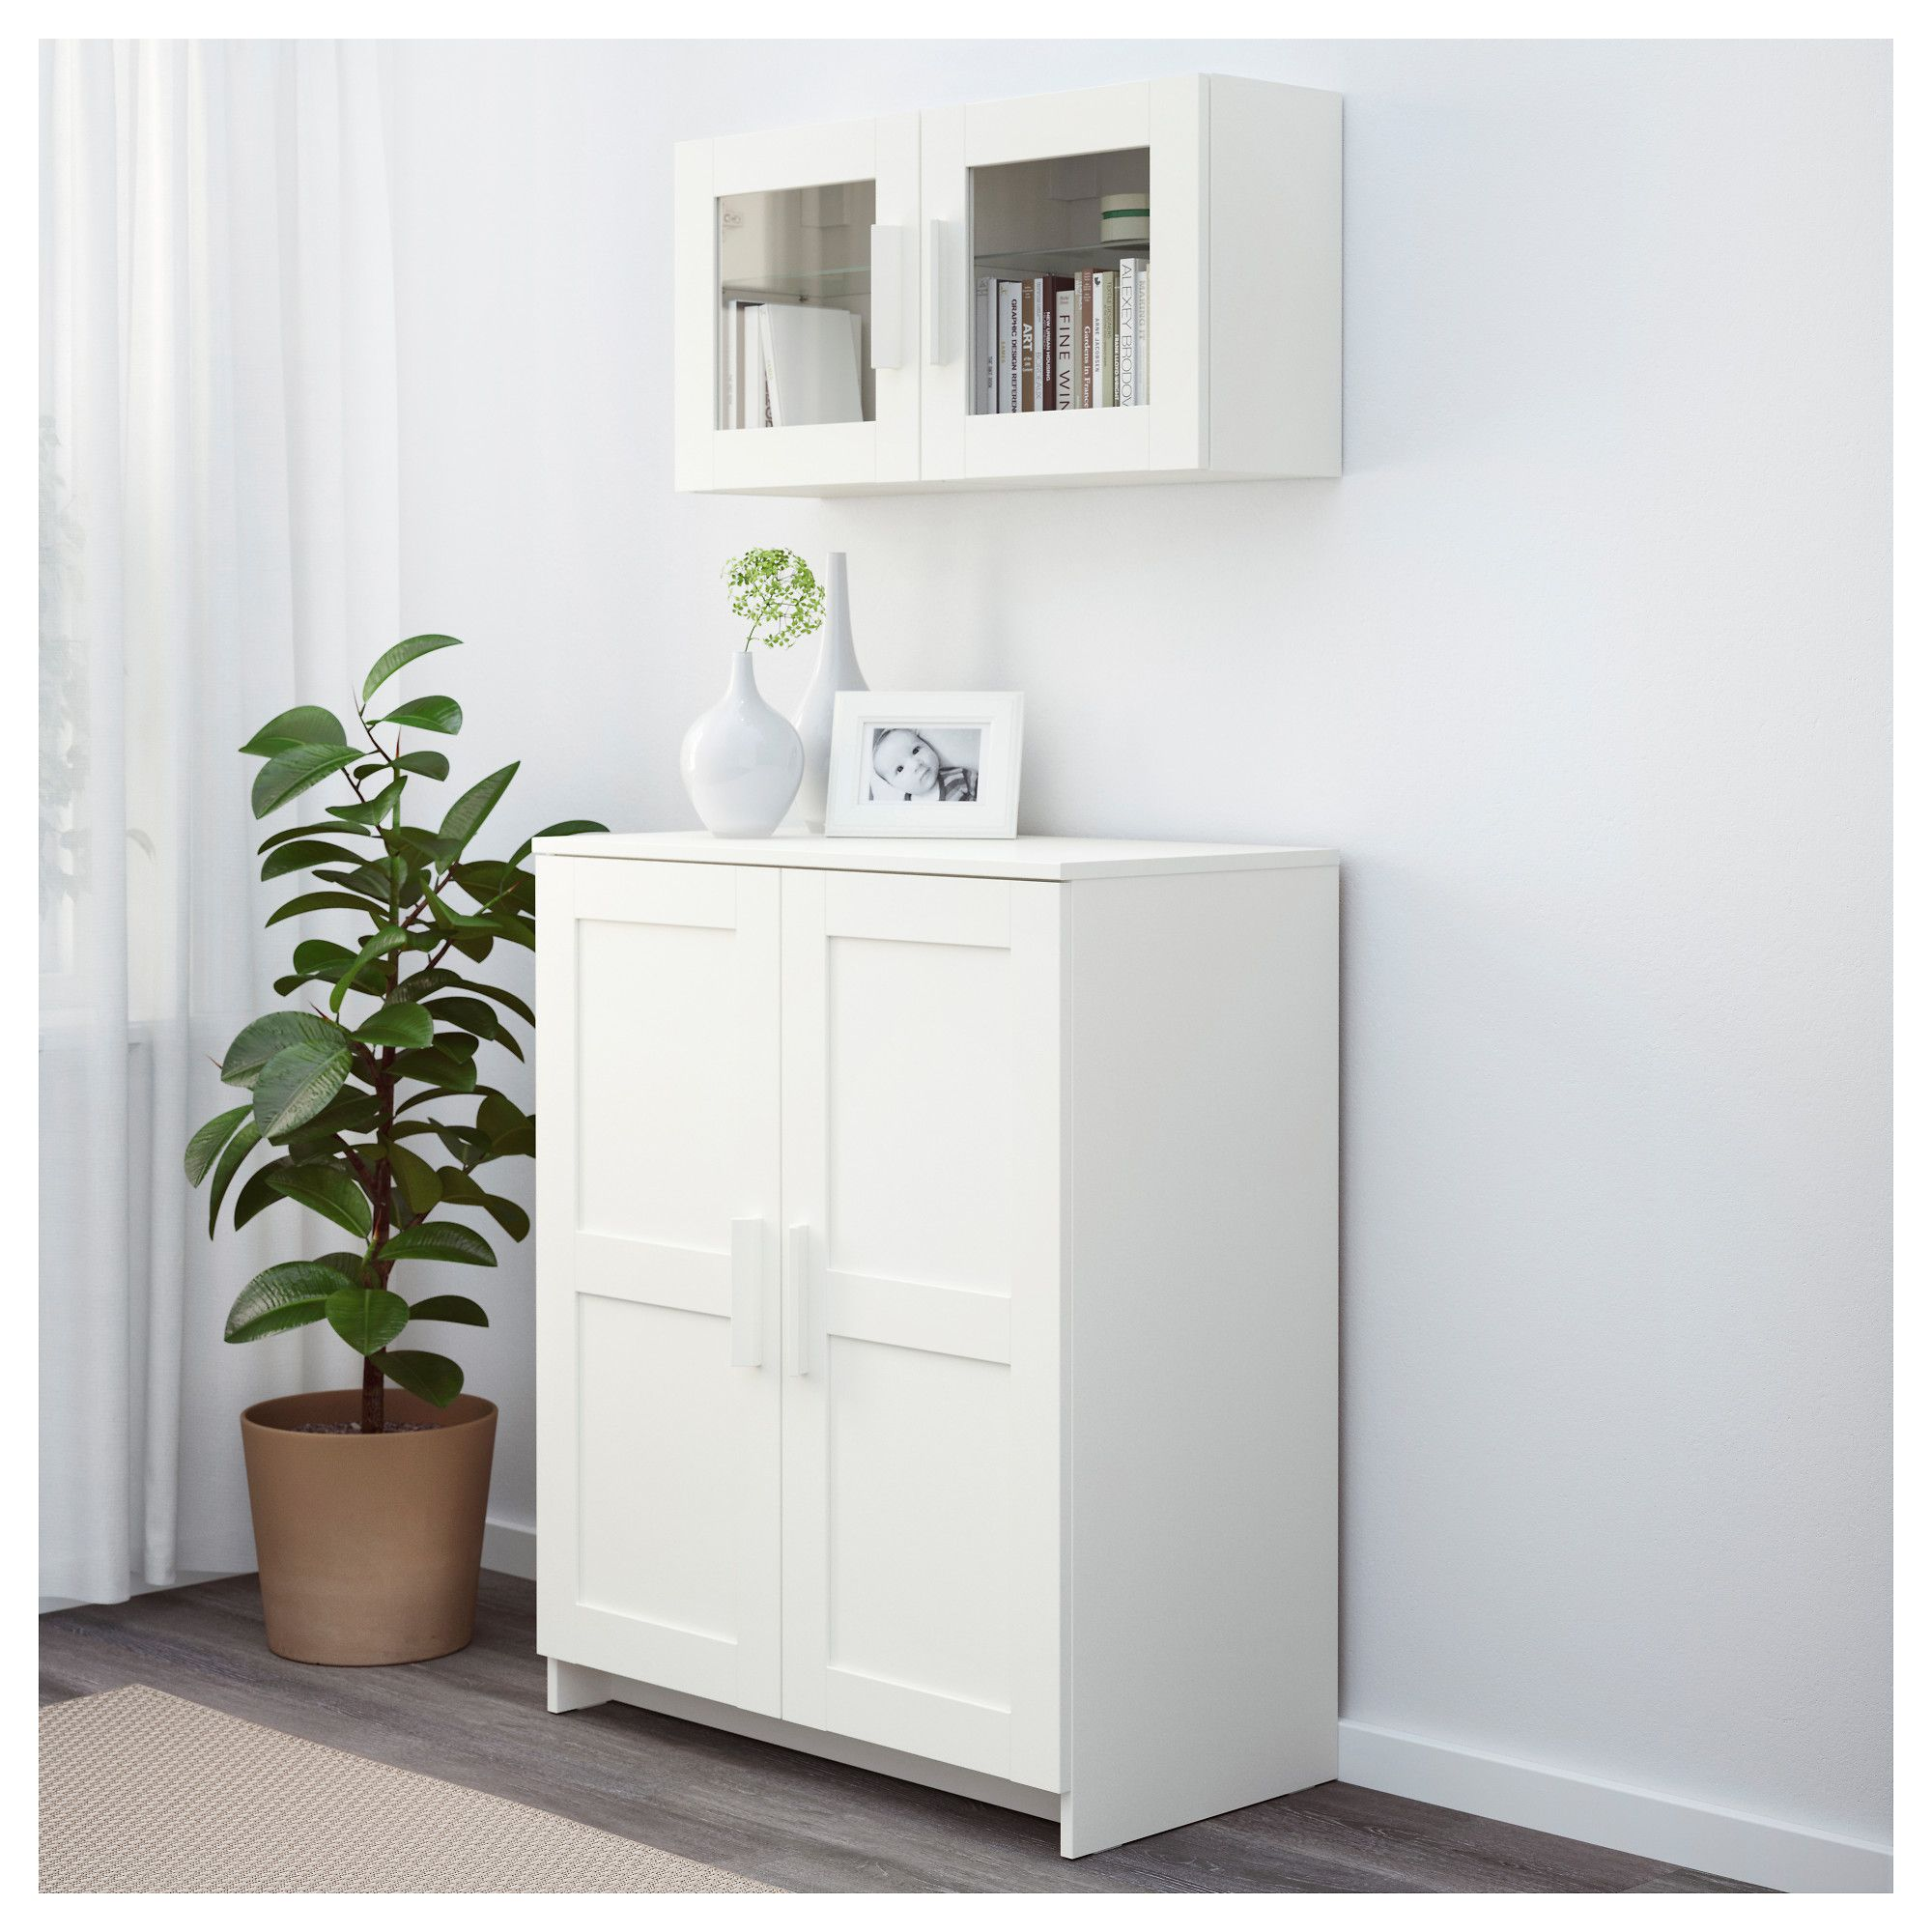 brimnes cabinet with doors white 78 x 95 cm. Black Bedroom Furniture Sets. Home Design Ideas